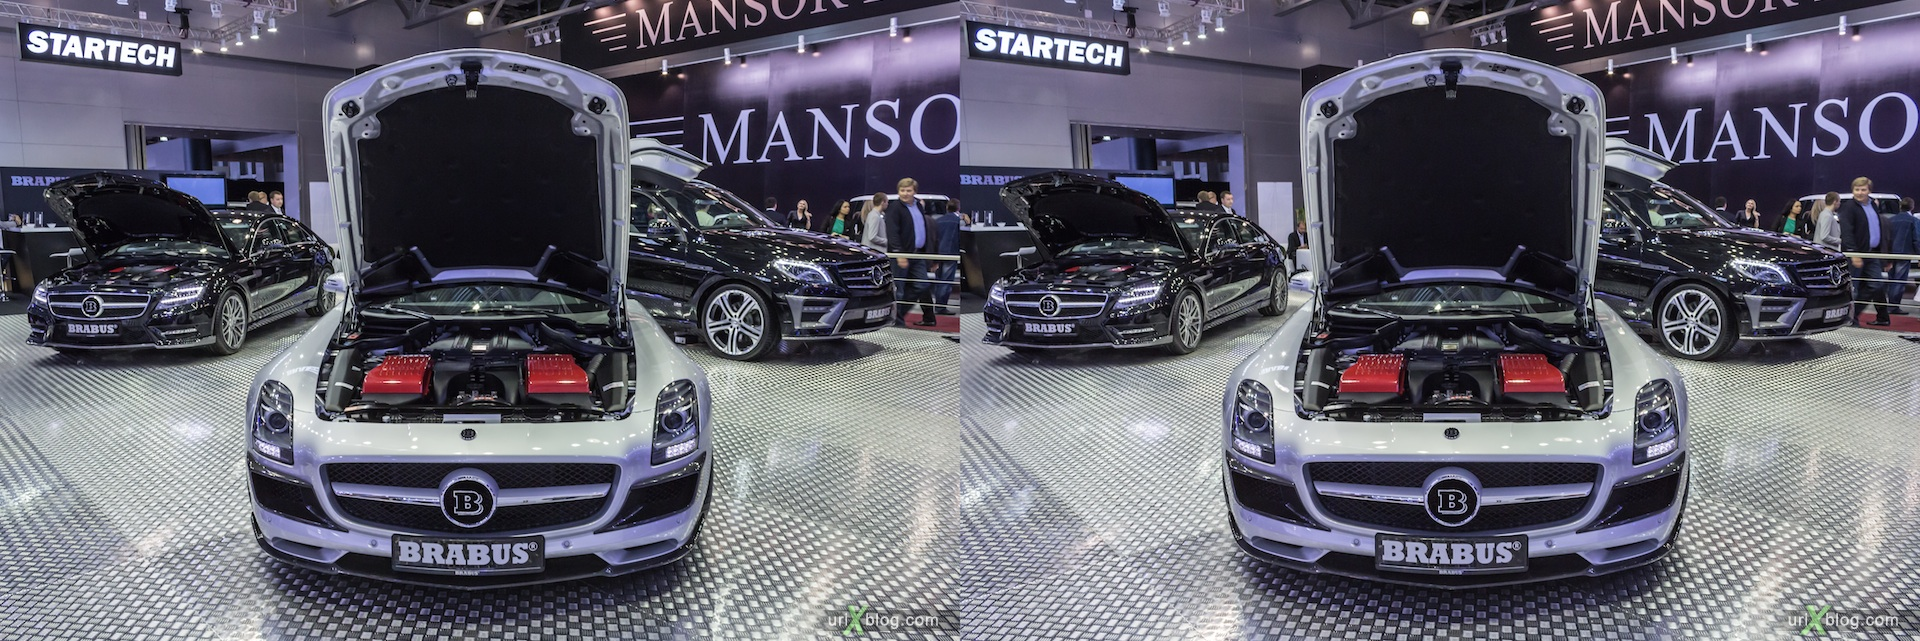 2012, Brabus, Moscow International Automobile Salon, auto show, 3D, stereo pair, cross-eyed, crossview